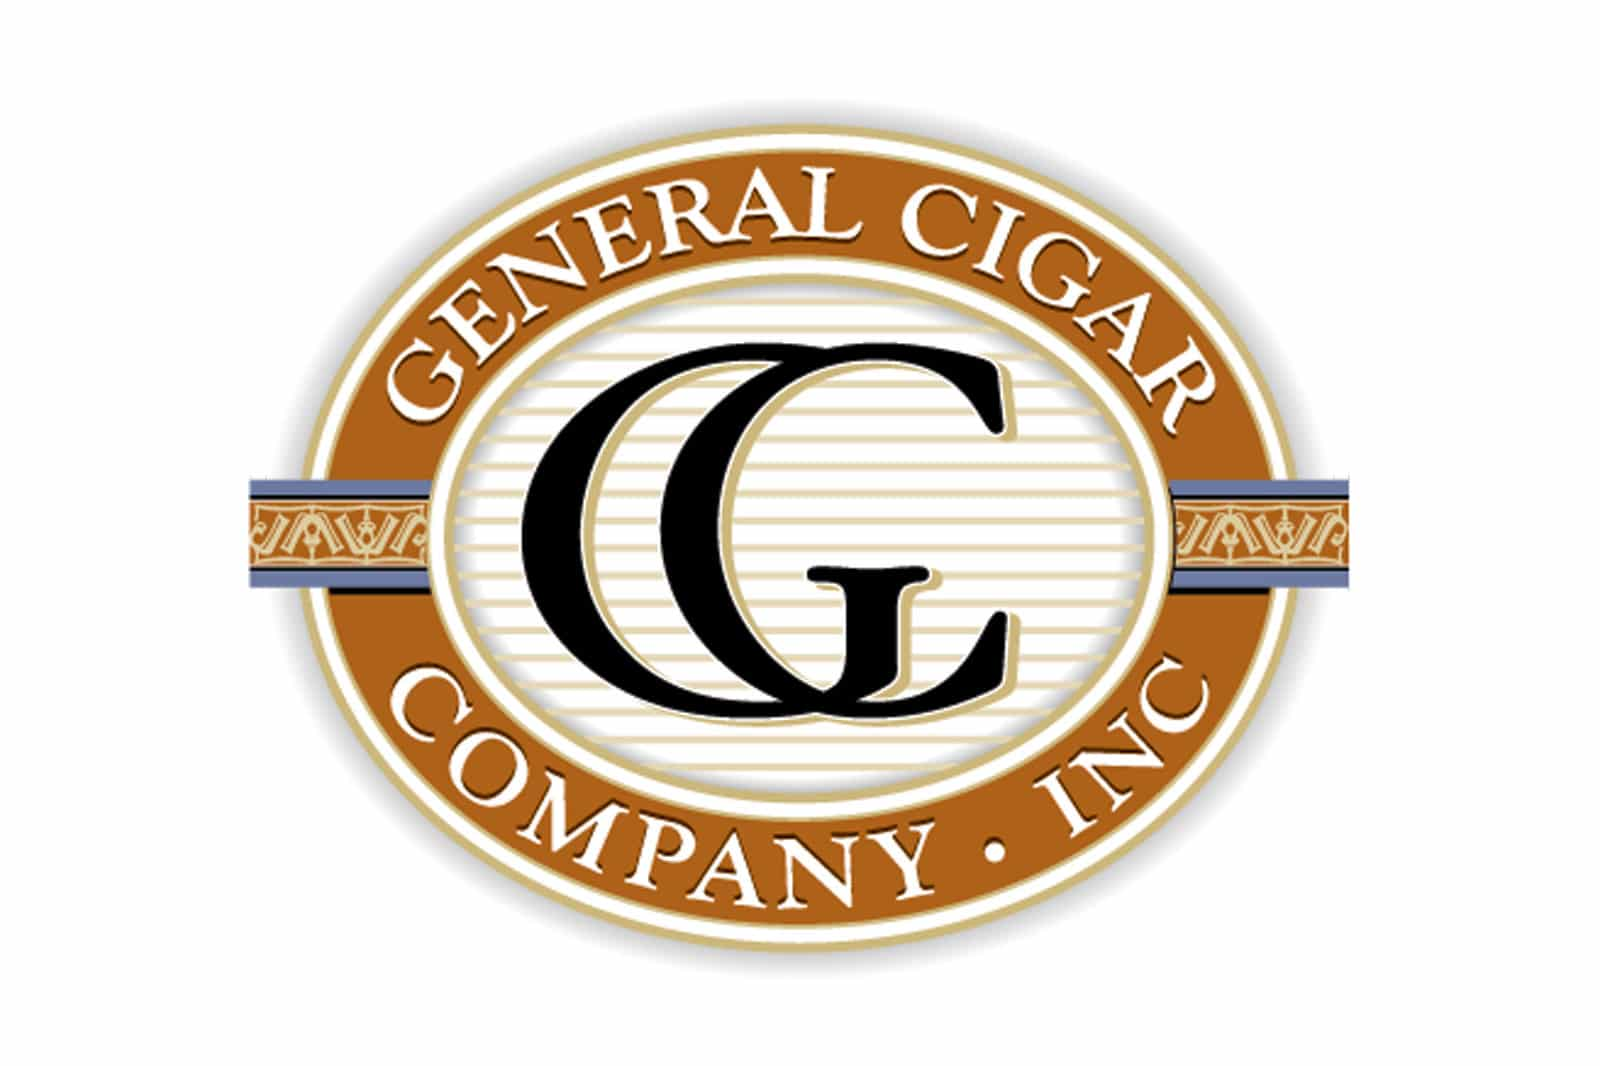 General Cigar Company logo